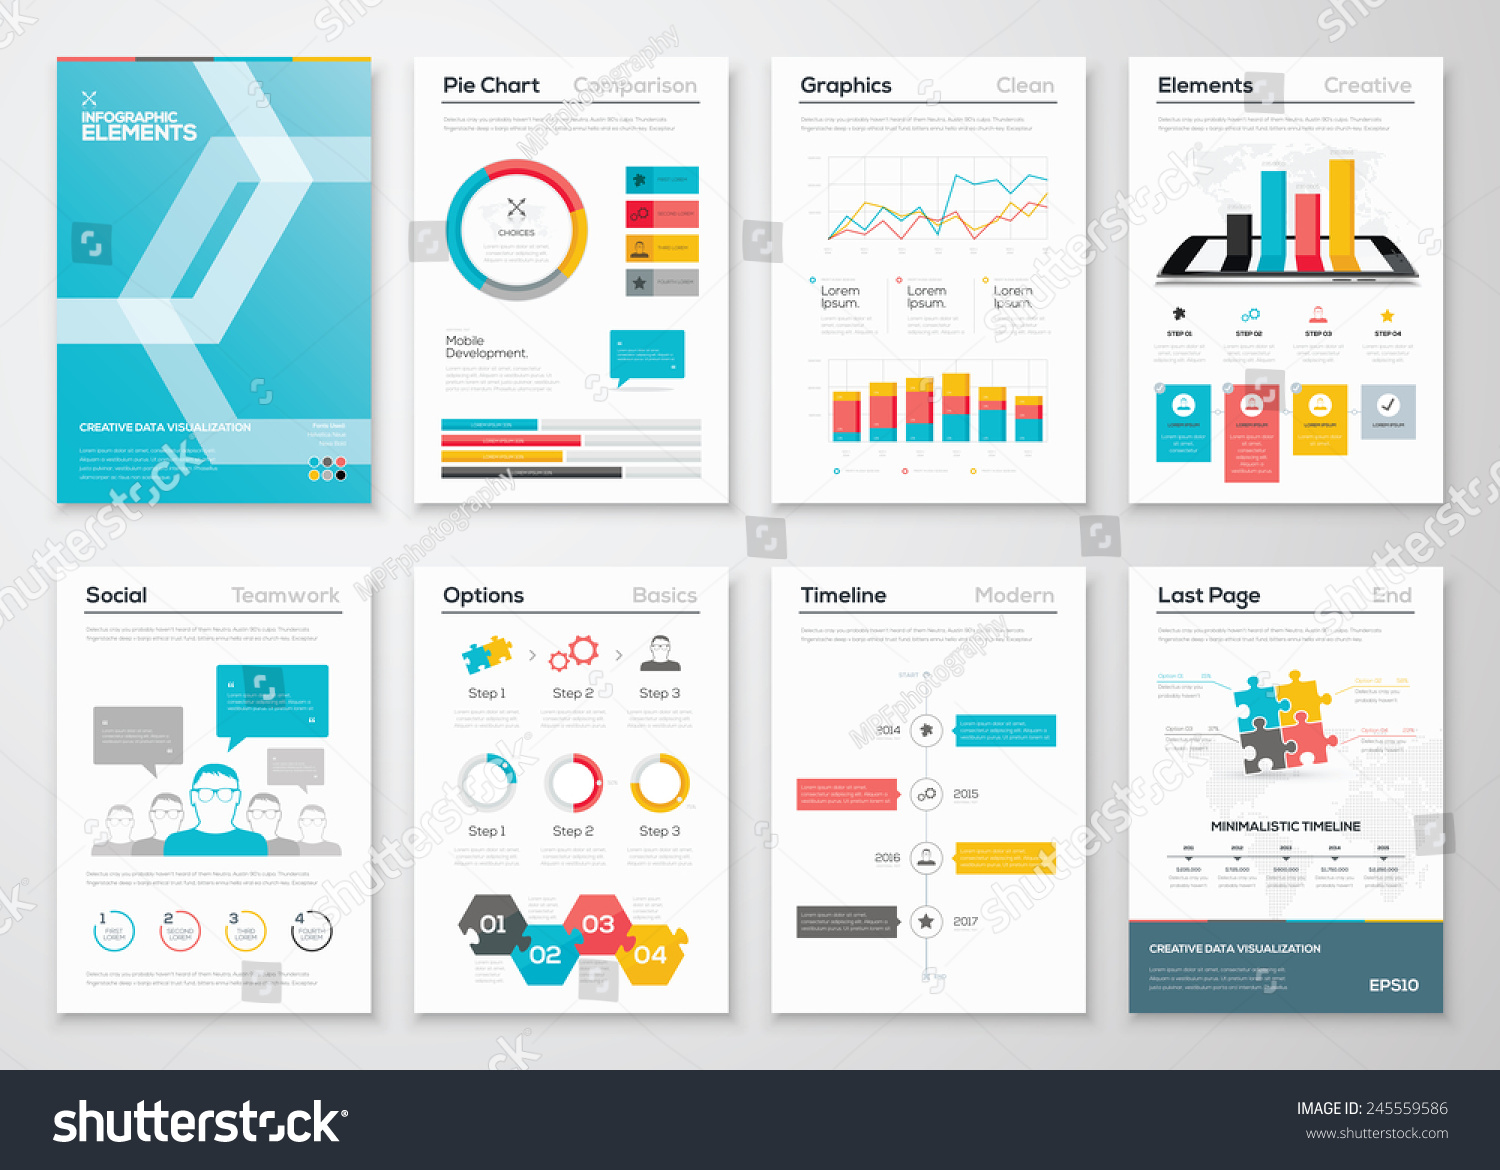 brochure website templates - infographic flyer brochure designs web templates stock